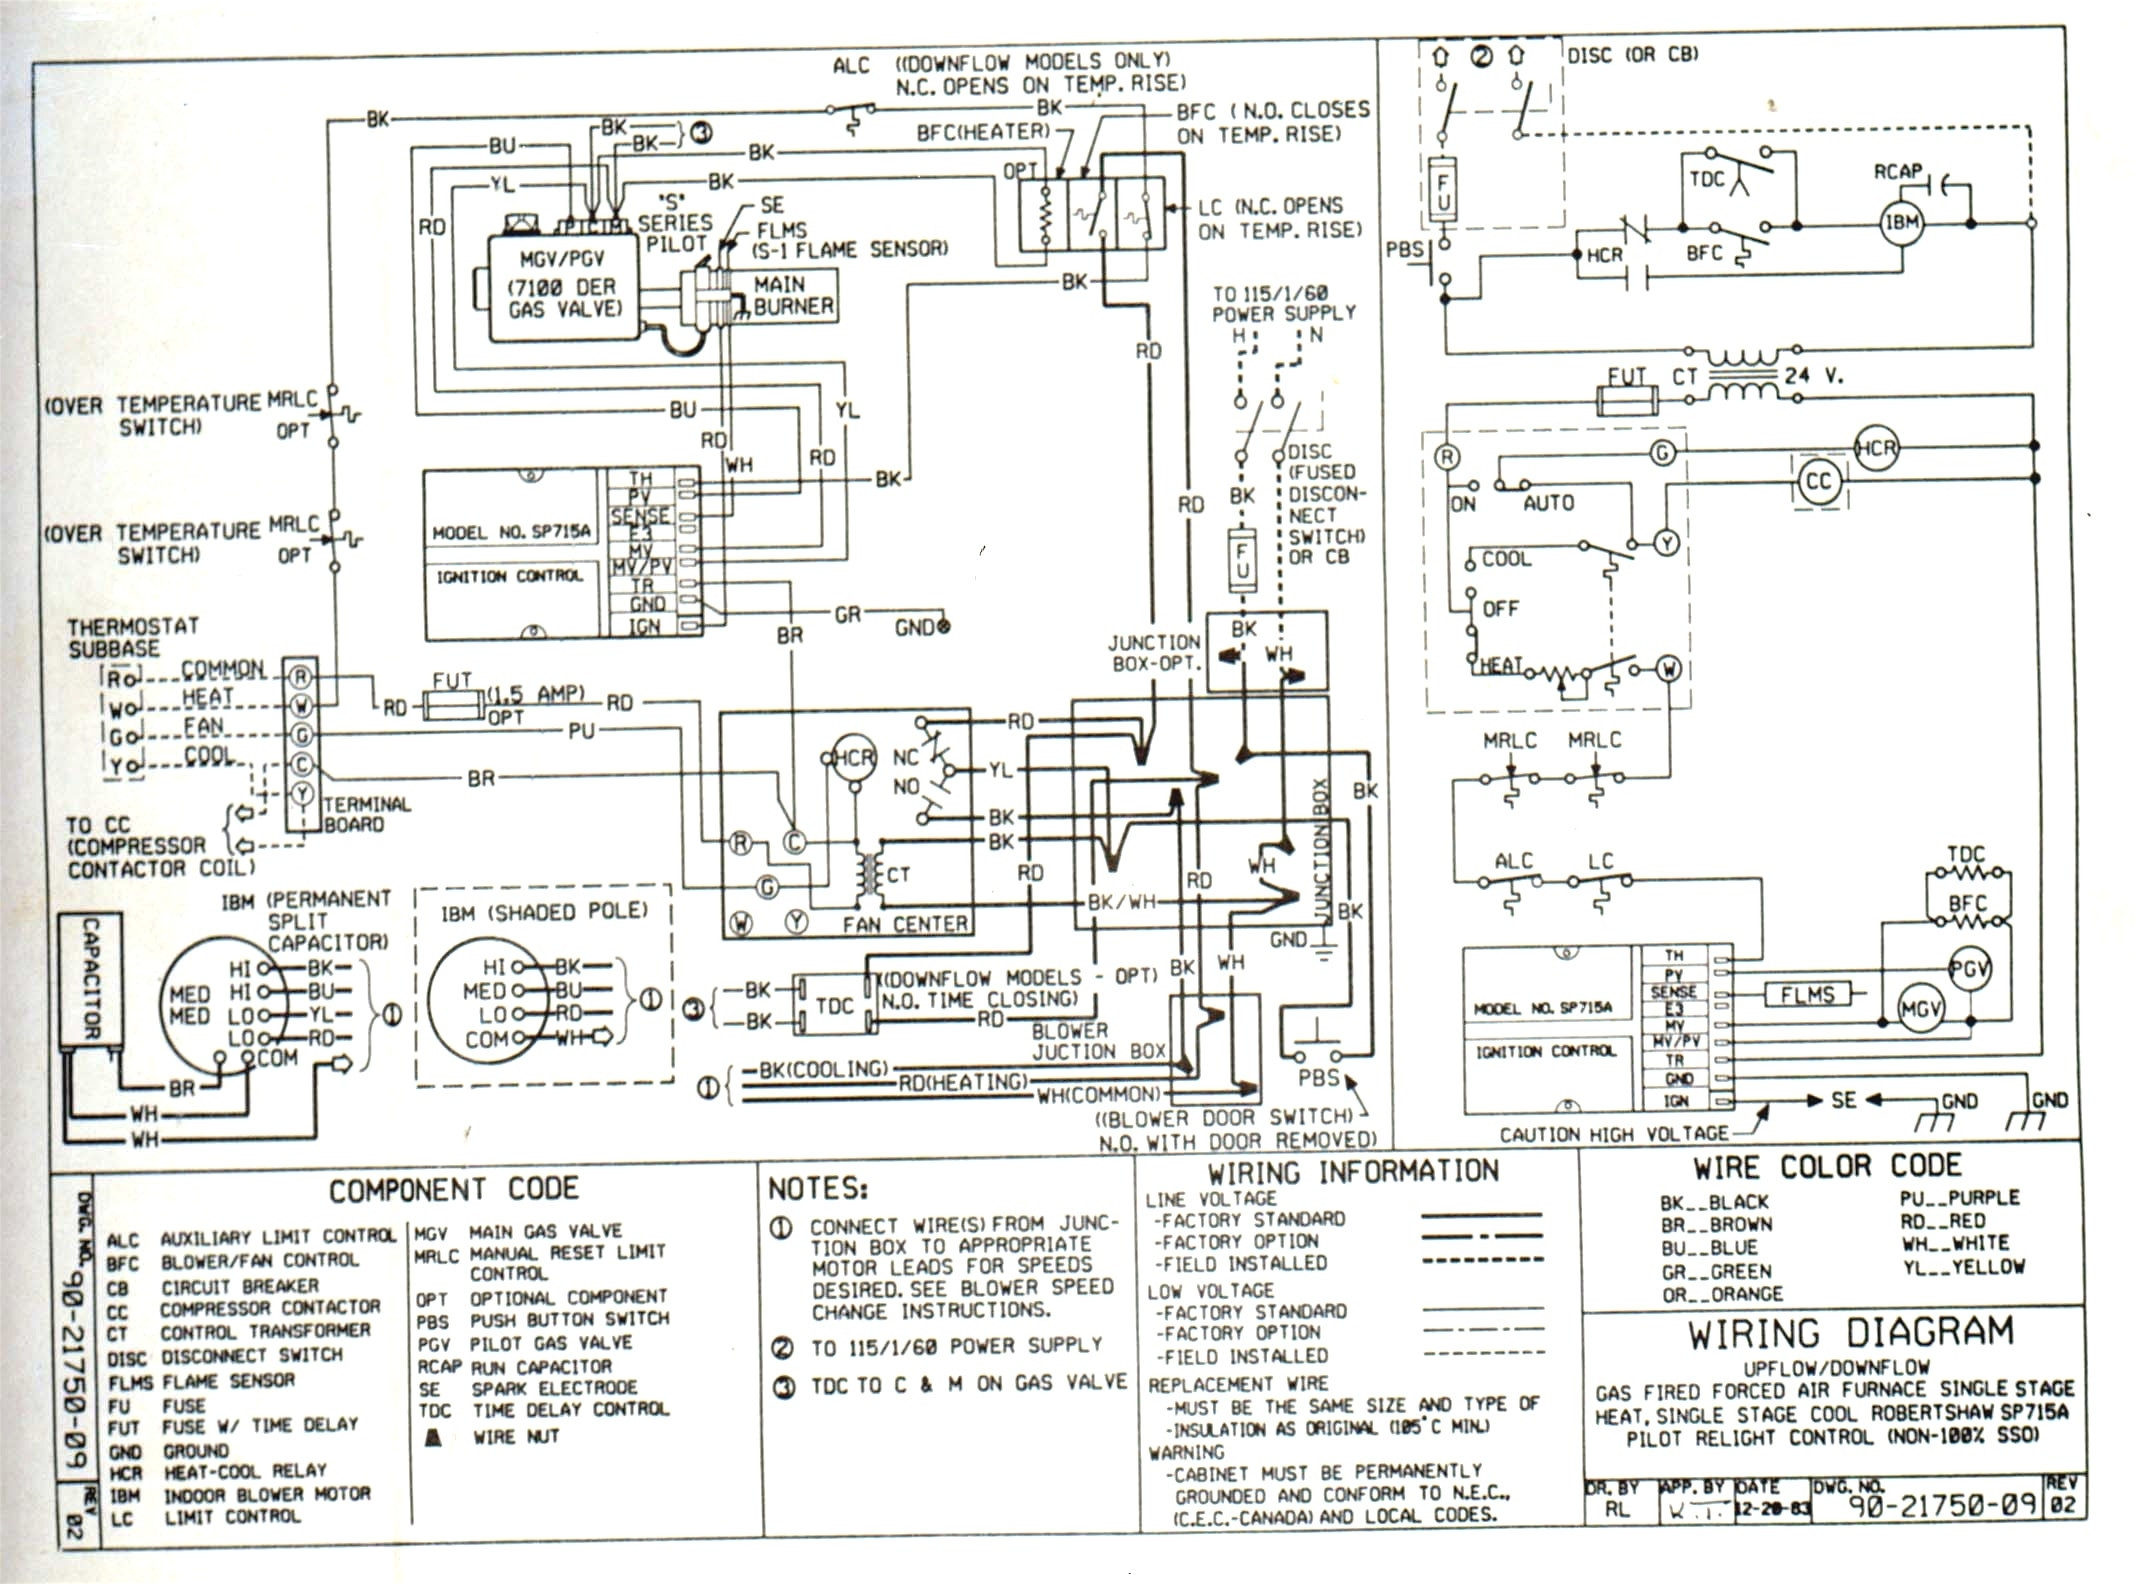 Xs400 Wiring Diagram | Machine Repair Manual on